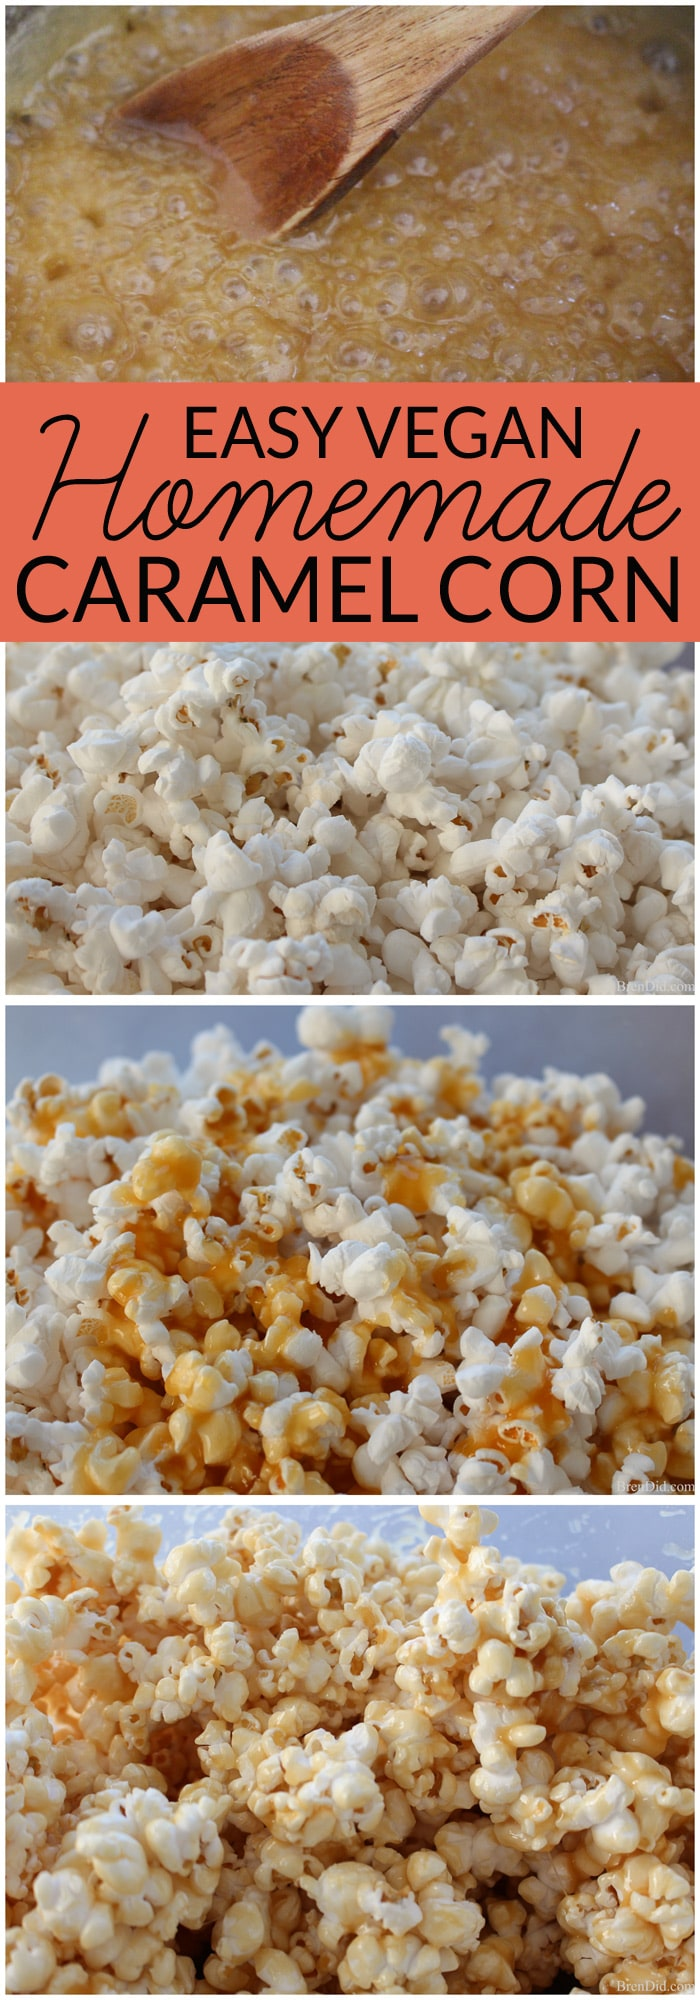 Homemade caramel corn is a delicious sweet treat. This easy version uses only sugar, butter, vanilla, cream, and salt to make a creamy caramel sauce. Vegan caramel recipe also included.